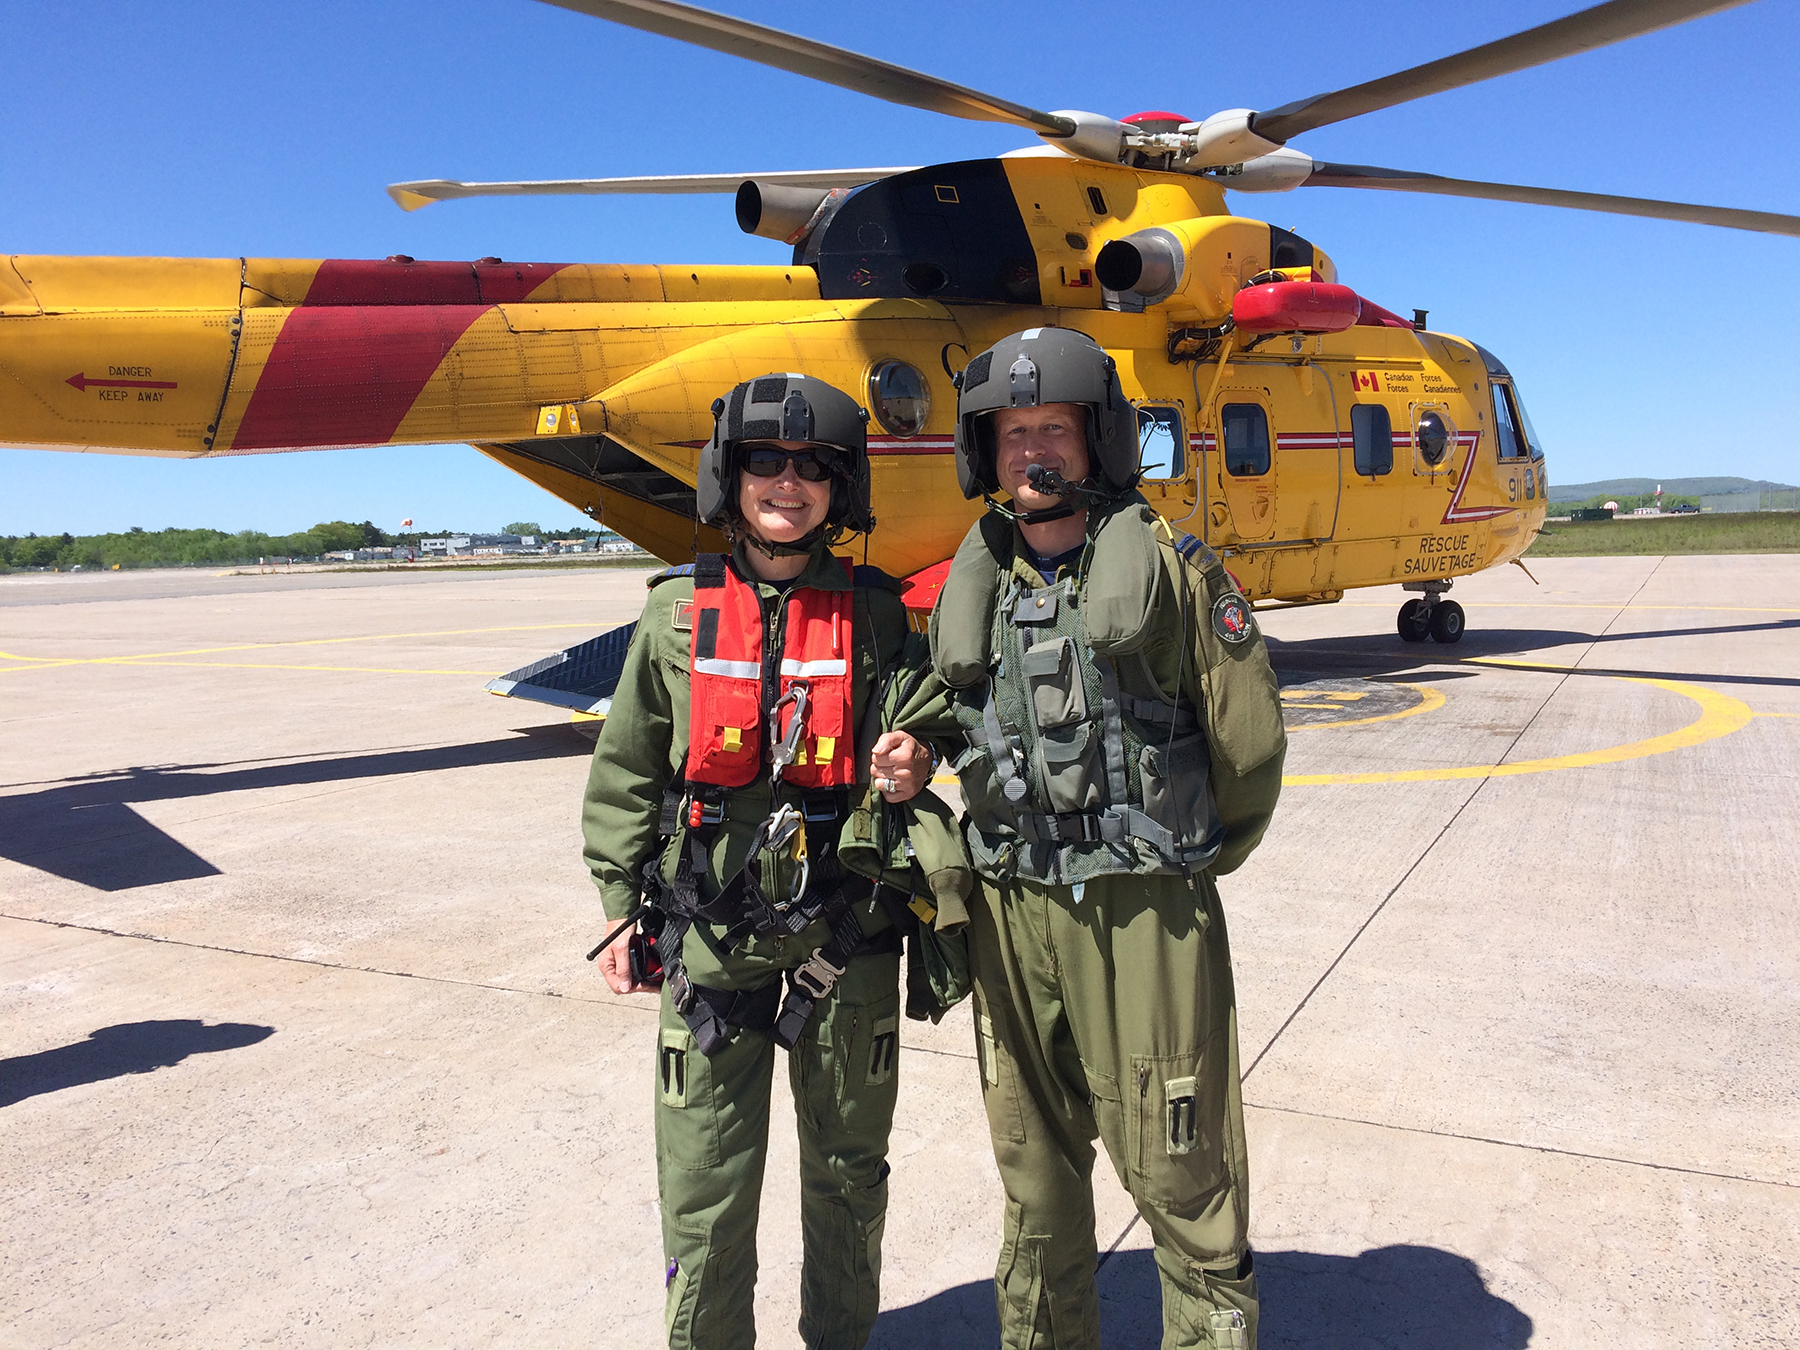 On June 12, 2019, Mayor of Kentville and Honorary Colonel of 14 Wing Greenwood's 415 (Long Range Patrol Force Development) Squadron Sandra Snow, and 413 (Transport and Rescue) Squadron Captain Steve MacDonald, are set to board a 413 Squadron CH-149 Cormorant. PHOTO: Sara White